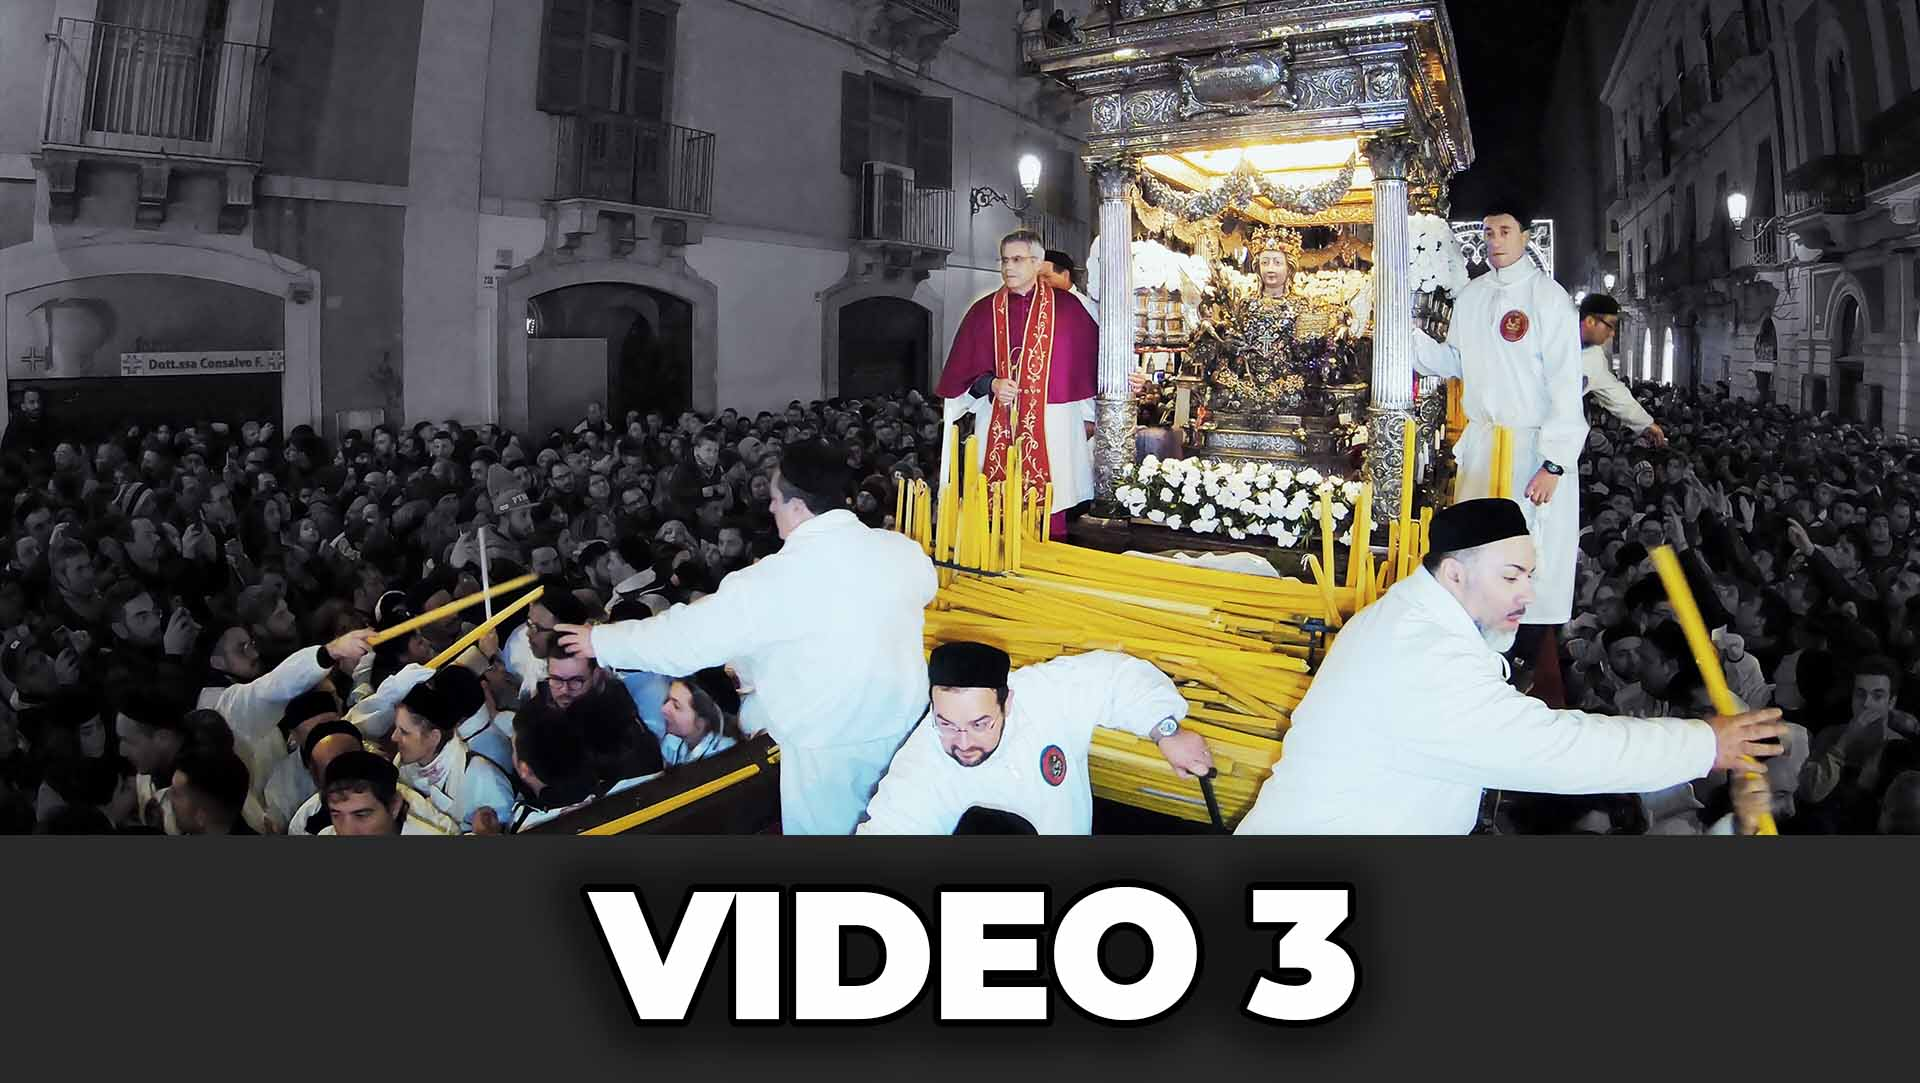 Copertina Video 3 - Documentario Sant'Agata 2019 - Ciclope film